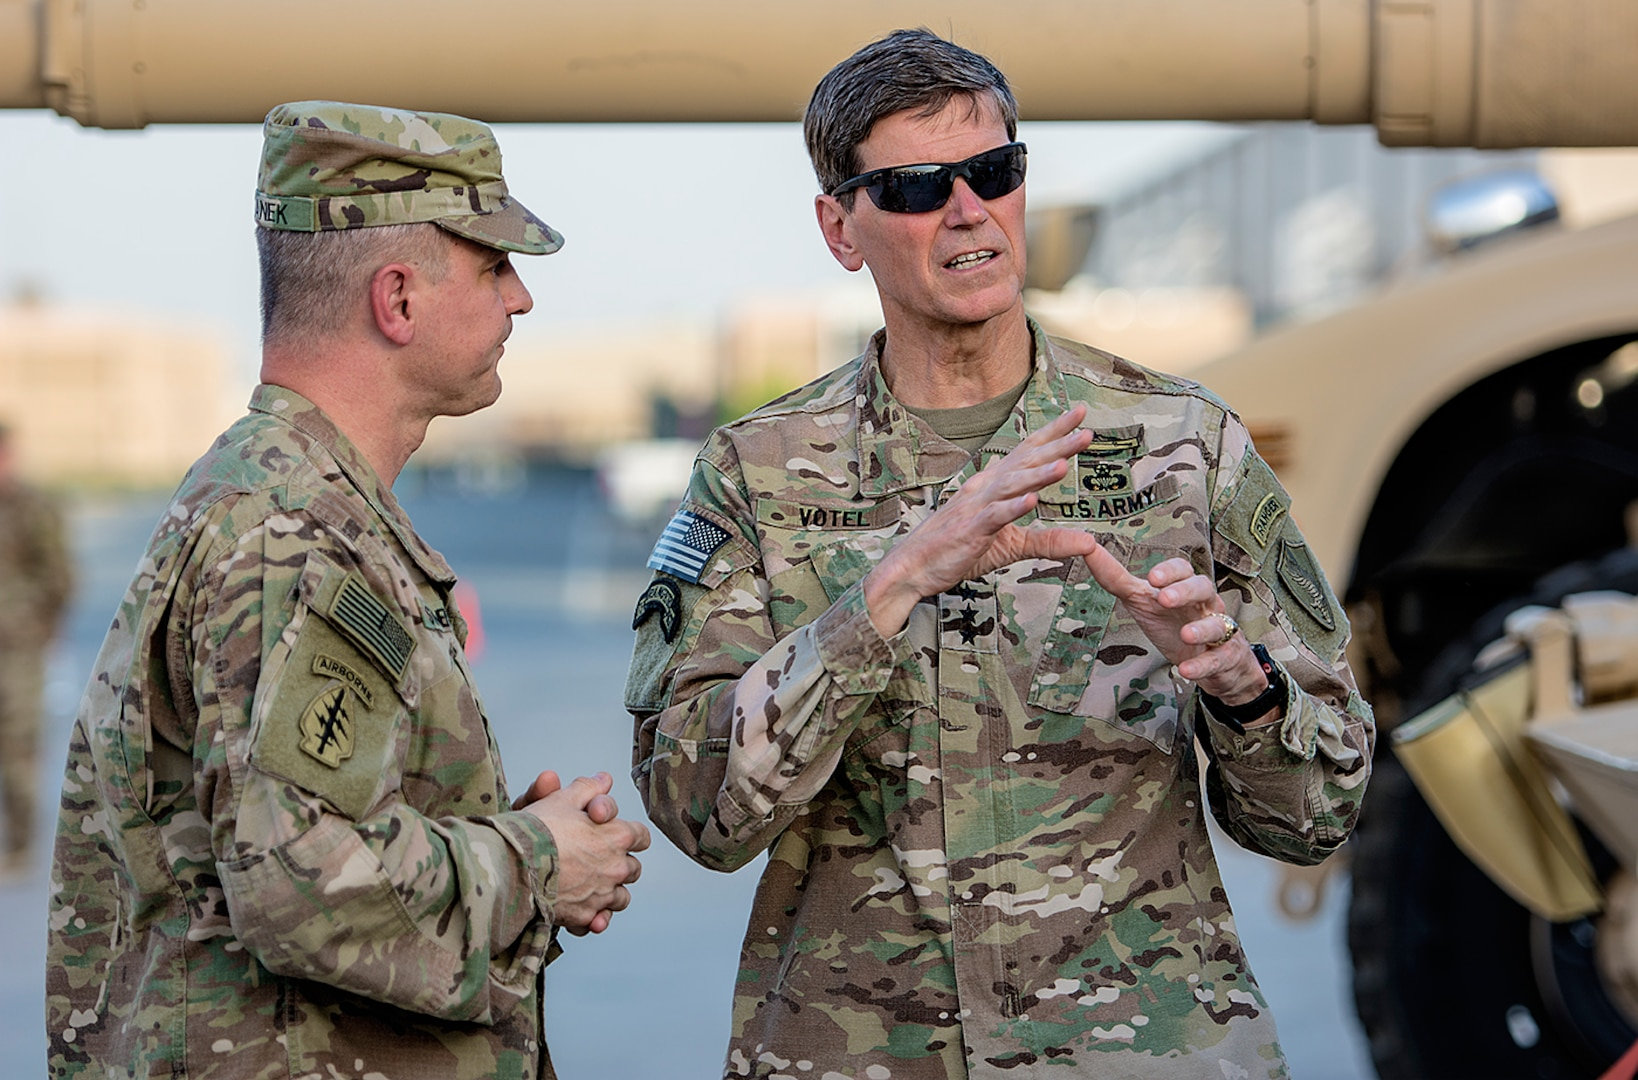 U.S. Central Command Commanding General, Army Gen. Joseph L. Votel (right) discusses maintenance and modernization of Army Prepositioned Stocks-5 heavy equipment with Col. Aaron Stanek, commander, 401st Army Field Support Brigade during a tour of the facility at Camp Arifjan, Kuwait, June 3. (U.S. Army photo by Justin Graff, 401st AFSB Public Affairs) (Photo Credit: Mr. Justin Graff (Rock Island Arsenal))